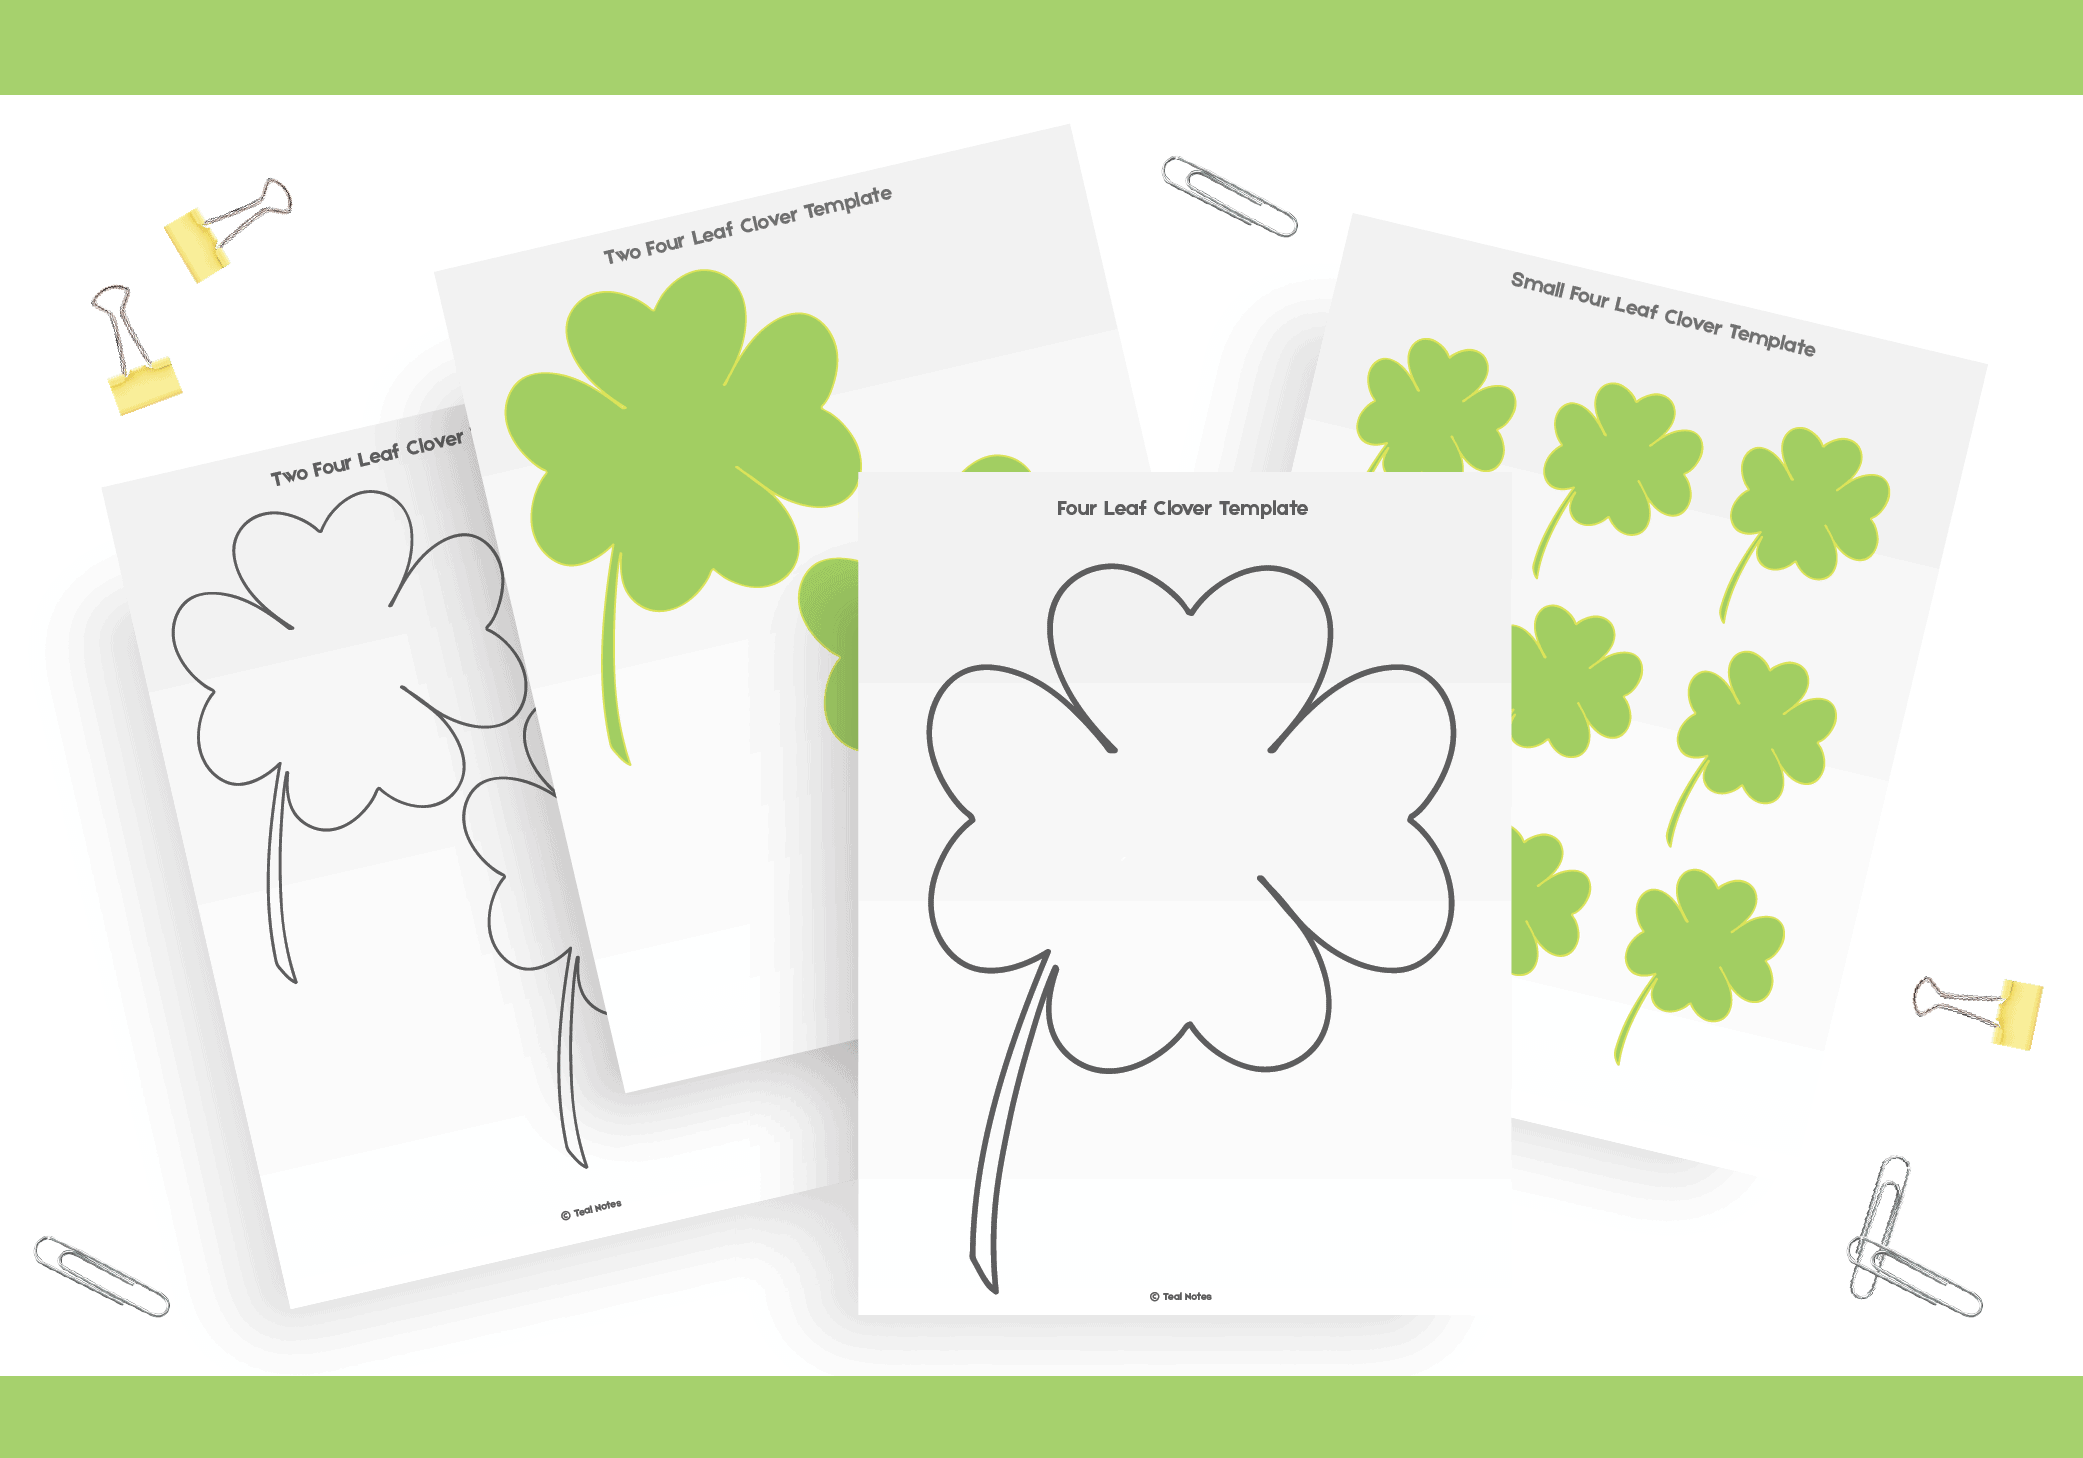 graphic about Shamrock Template Free Printable known as 4 Leaf Clover Template: Absolutely free Shamrock Template Printable